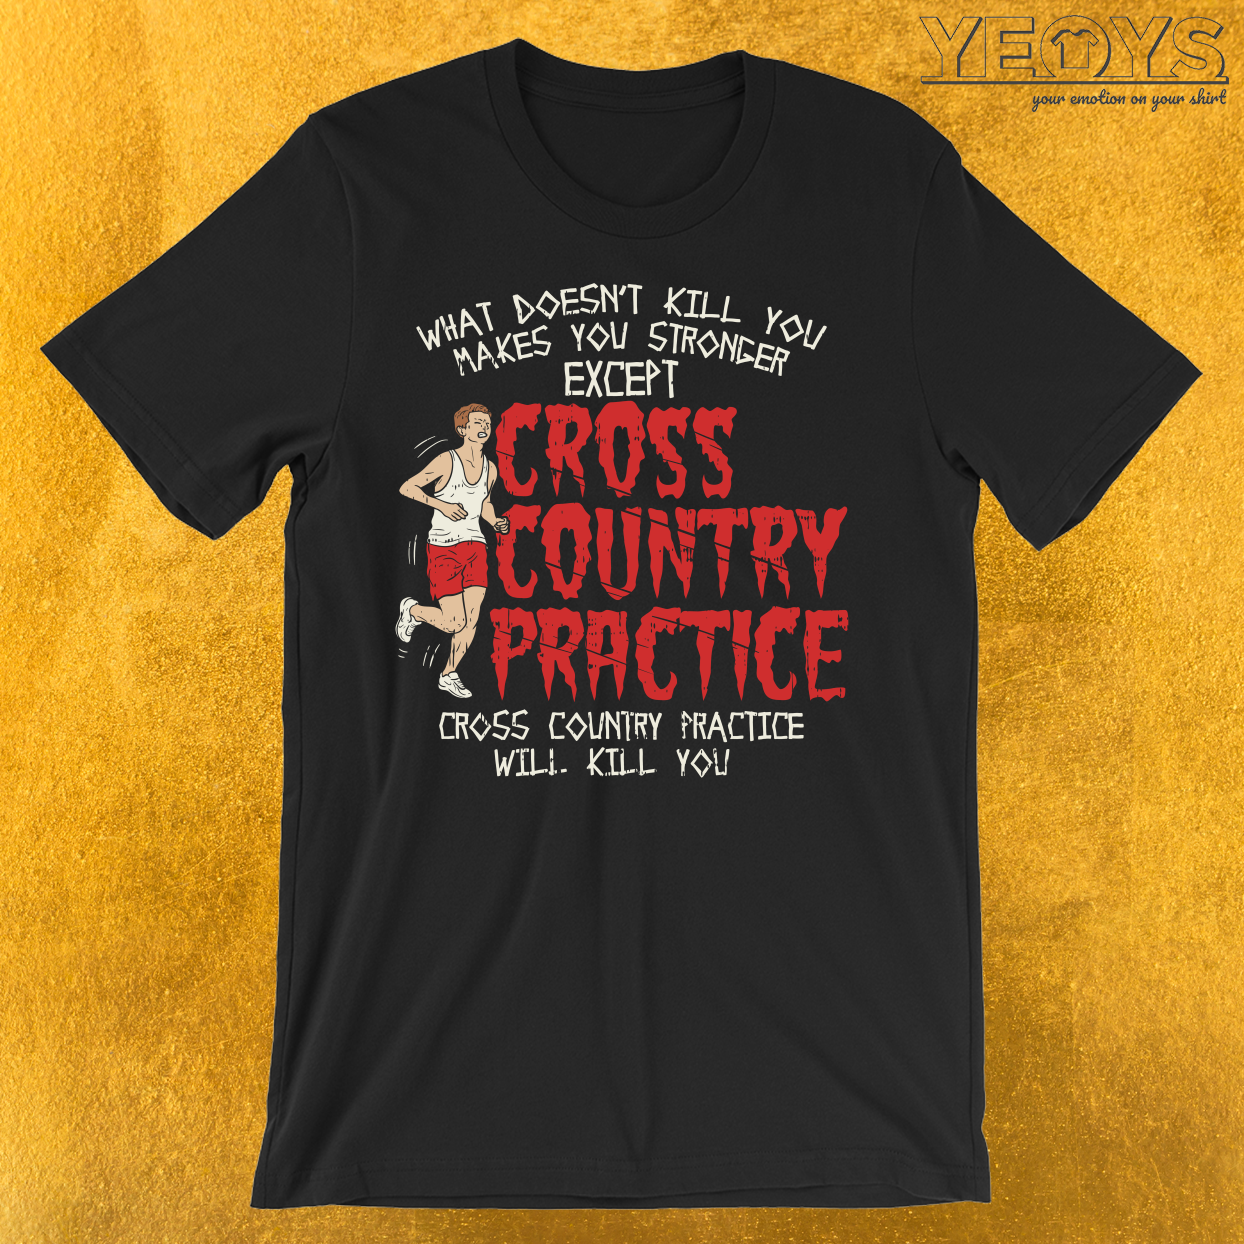 Cross Country Practice Will Kill You T-Shirt